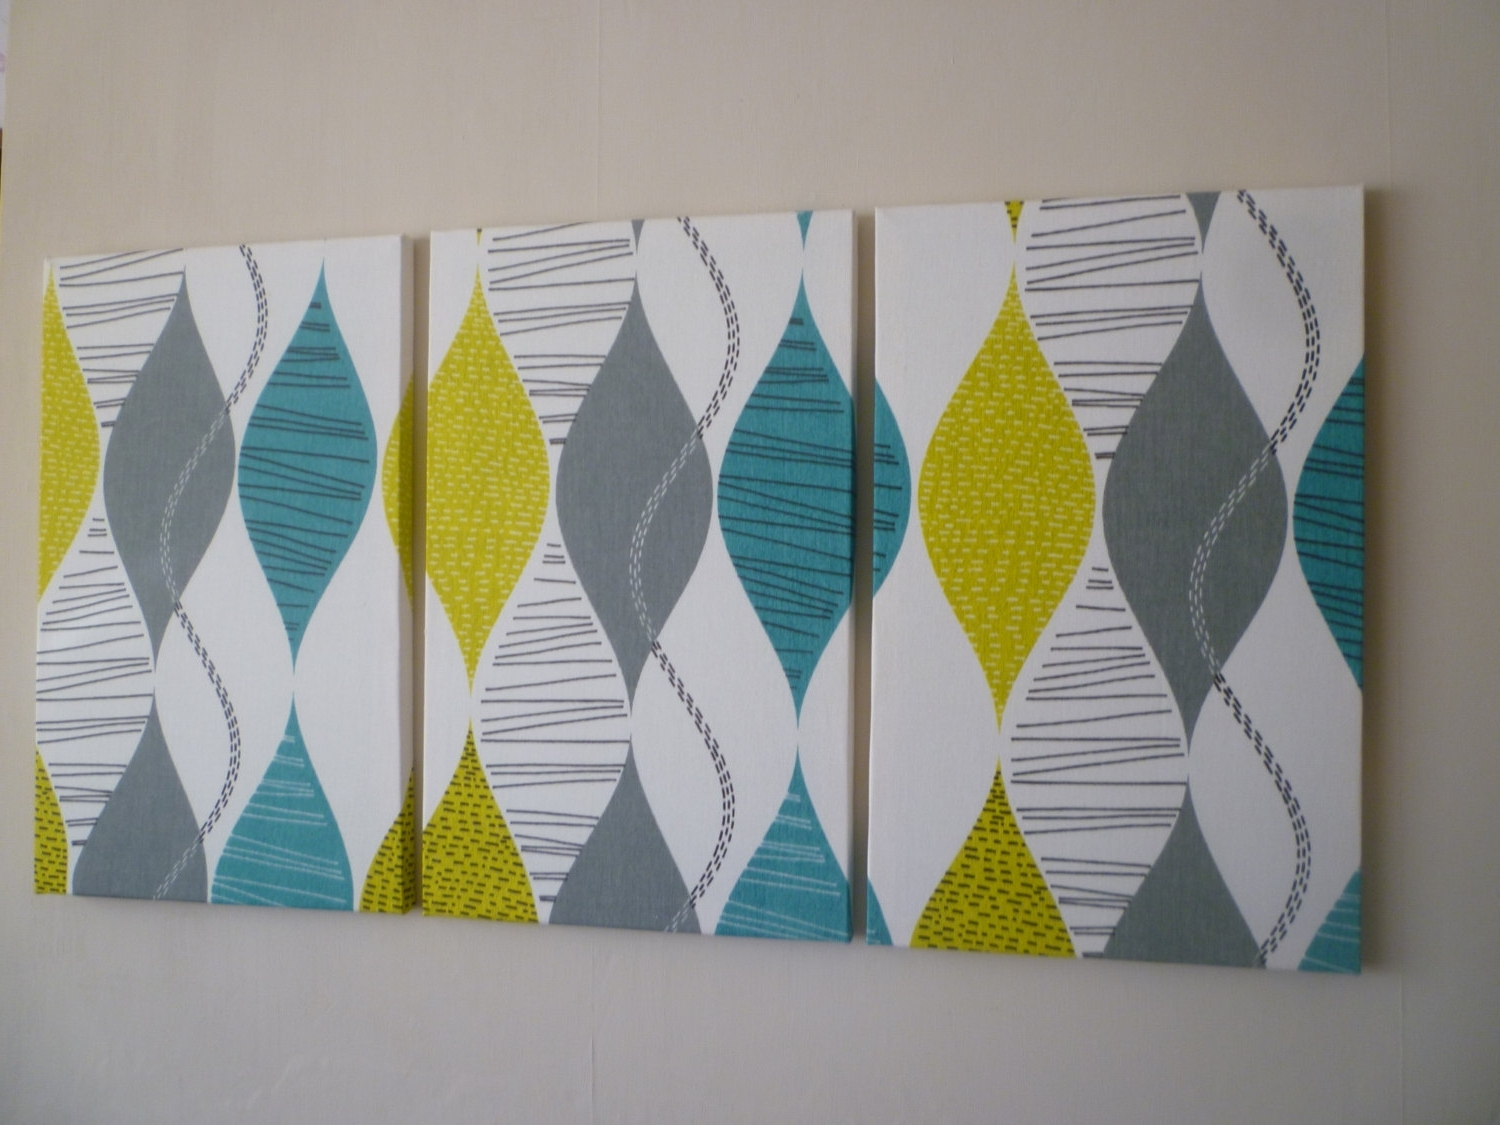 Big Fabric Wall Art Teal Lime Green Triptych 3 Piece Modern With Favorite Modern Fabric Wall Art (View 4 of 15)